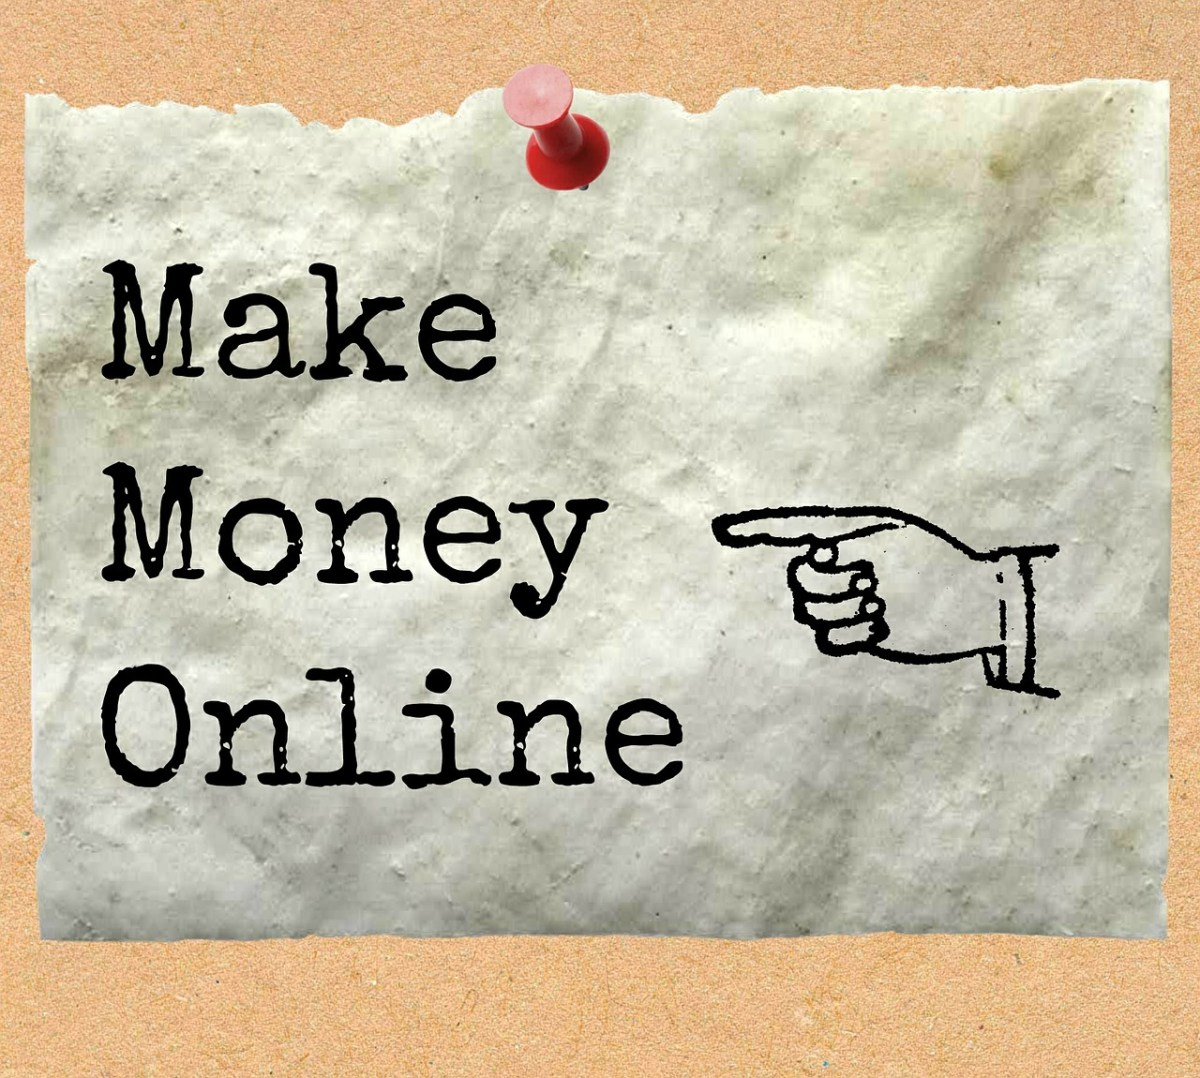 Top 3 Advice On How To Make Money Online From Top 3 Work From Home Bloggers